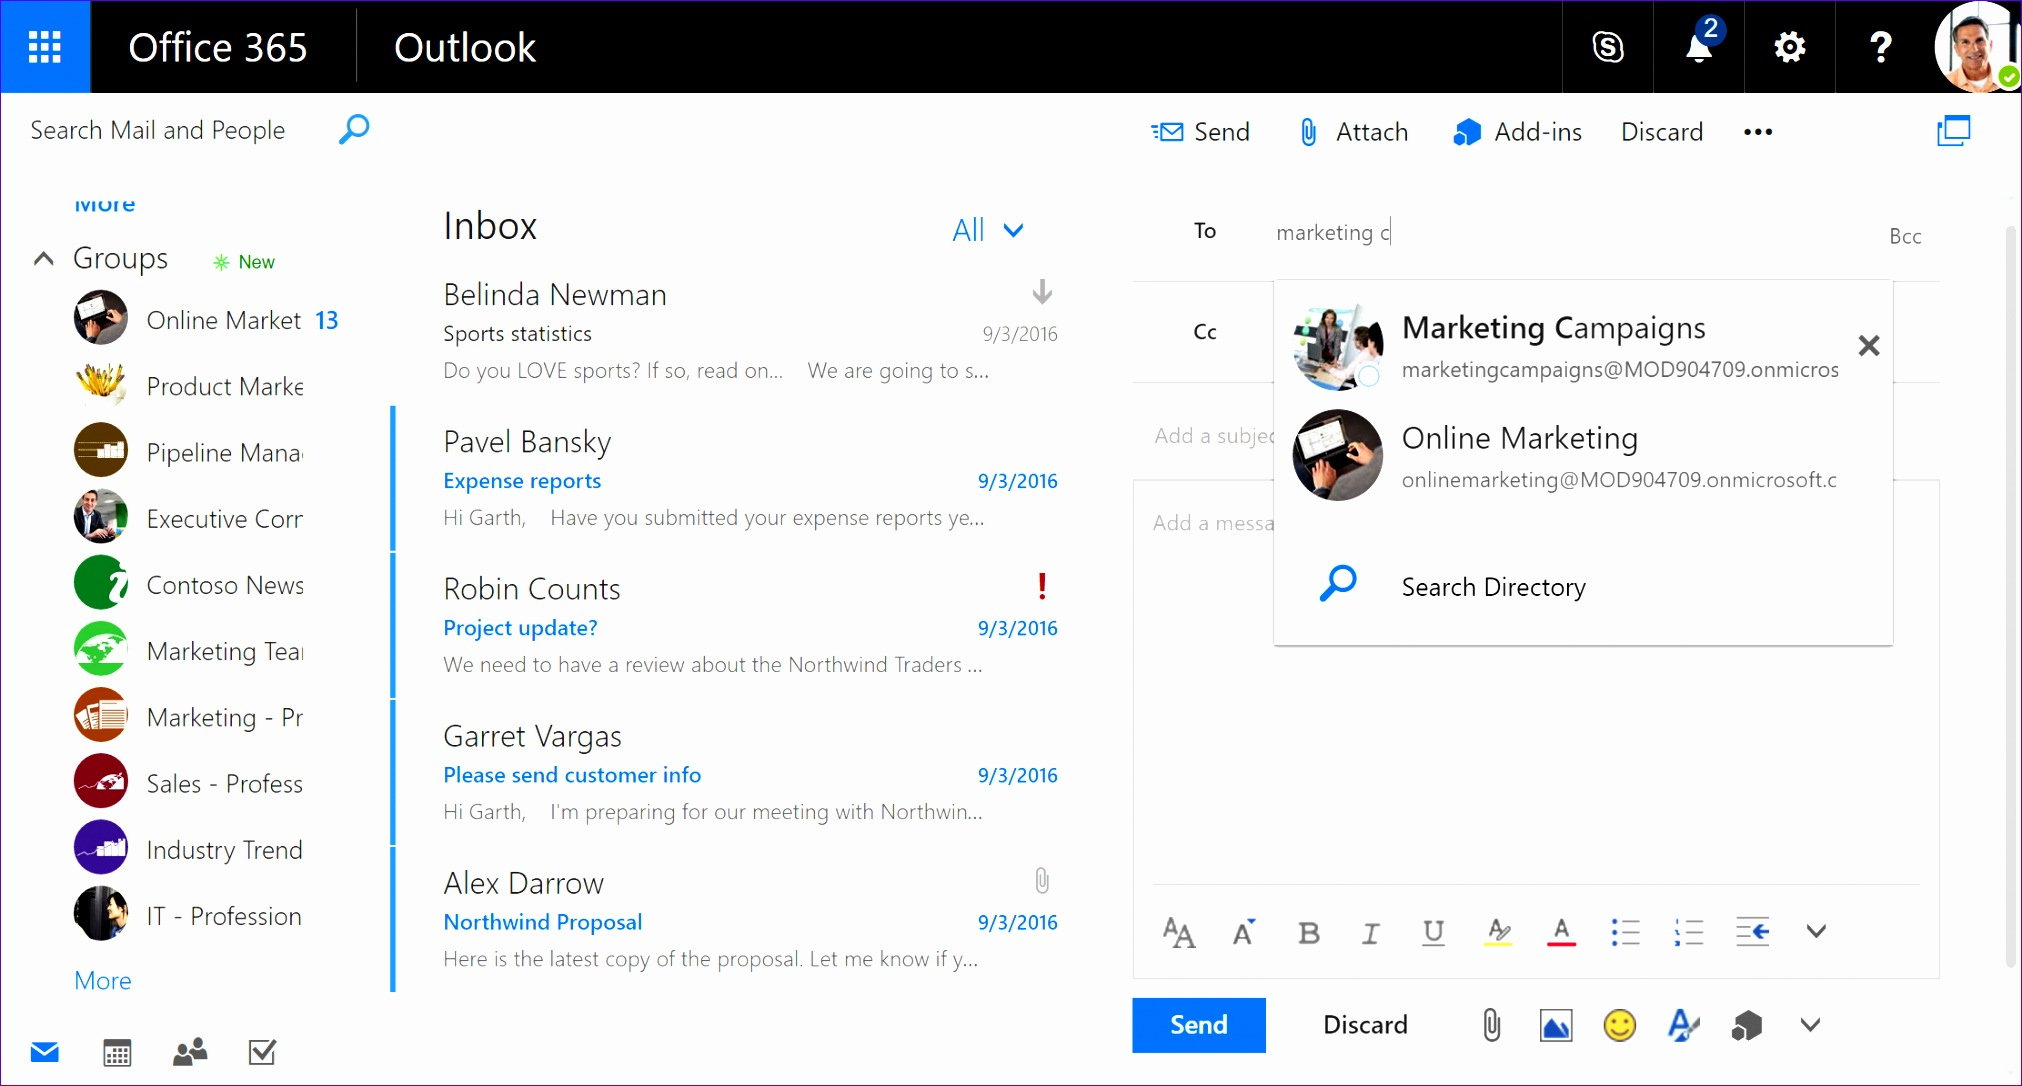 yammer strengthens team collaboration through integration with office 365 groups 20221086